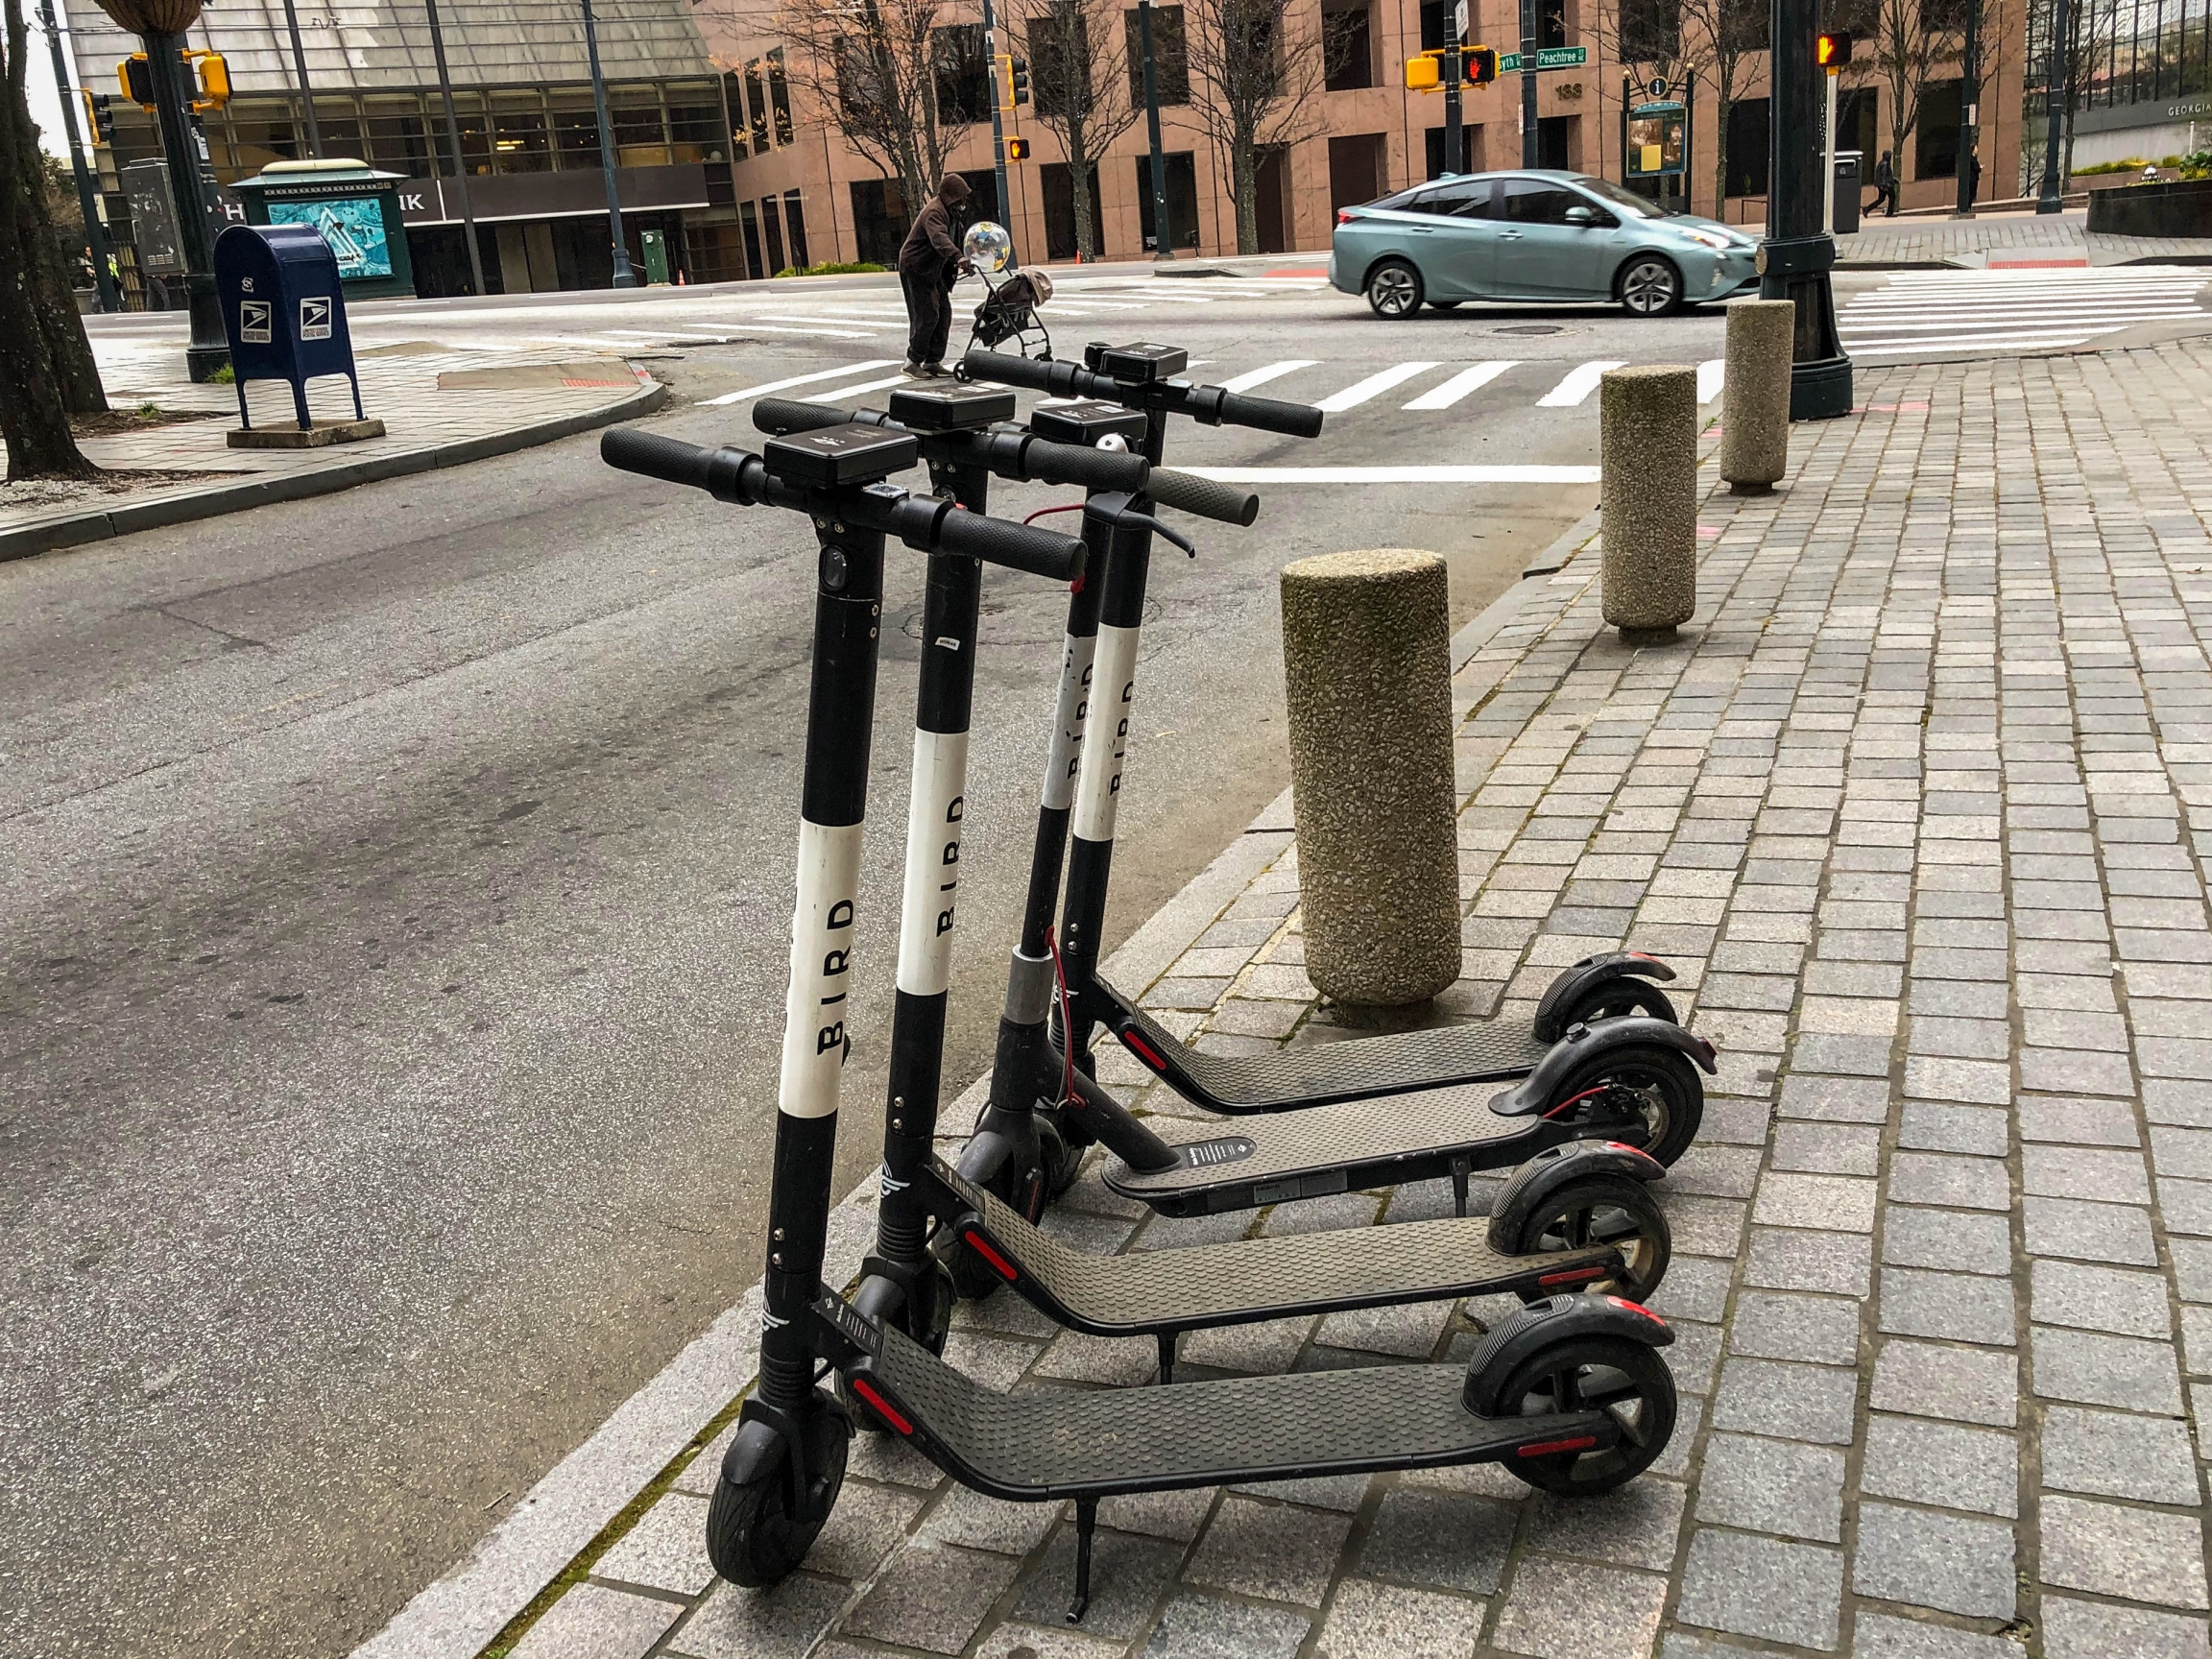 Electric scooters on the streets of Atlanta